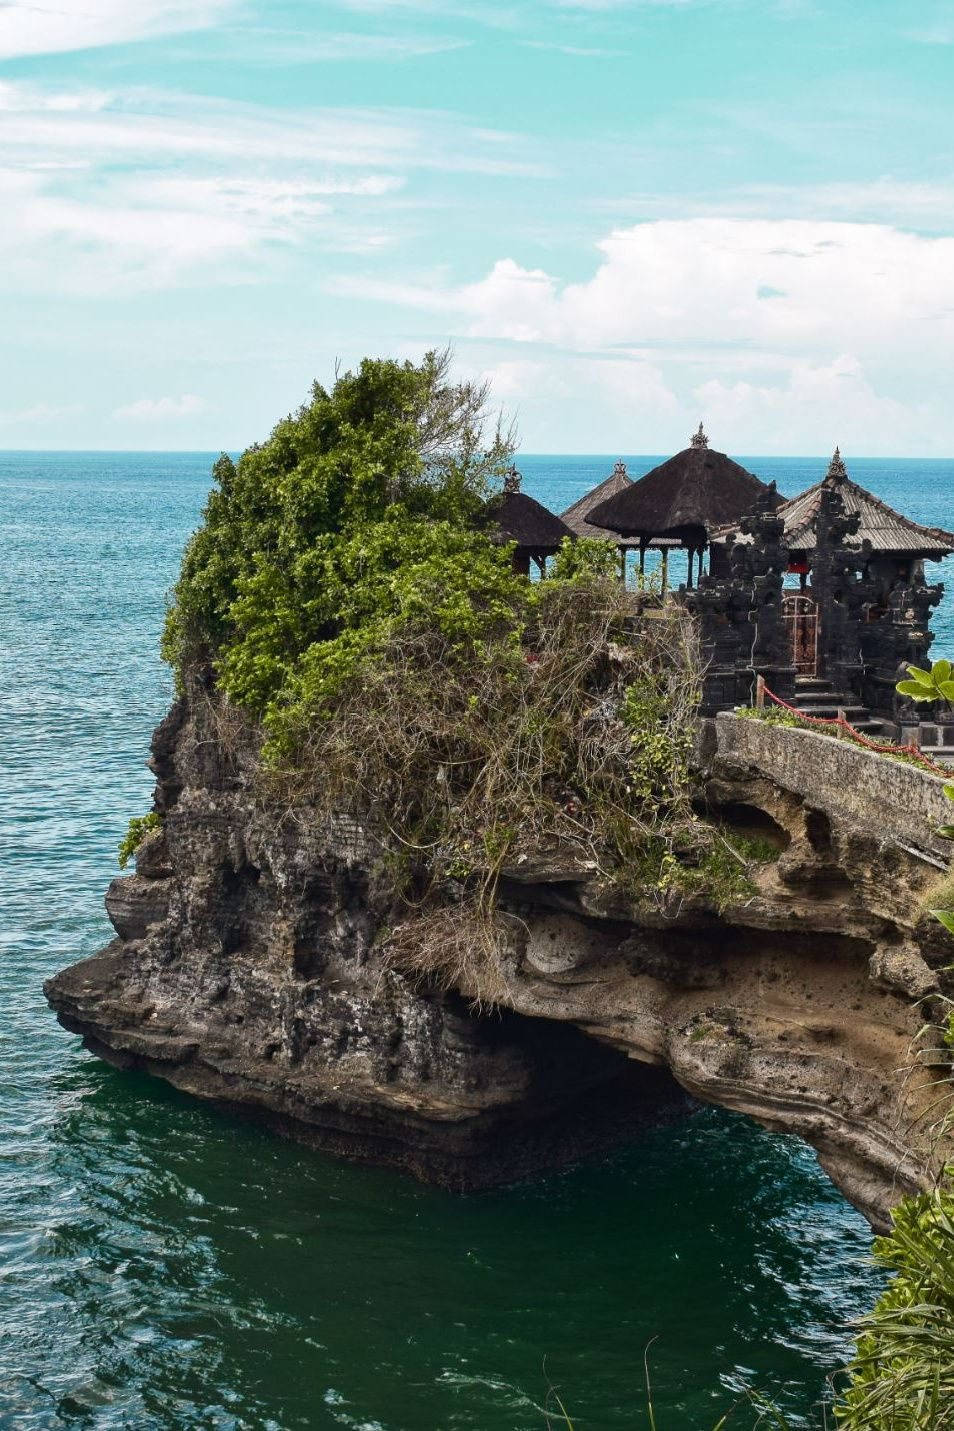 5 Must See Temples In Bali With Images Bali Travel Travel